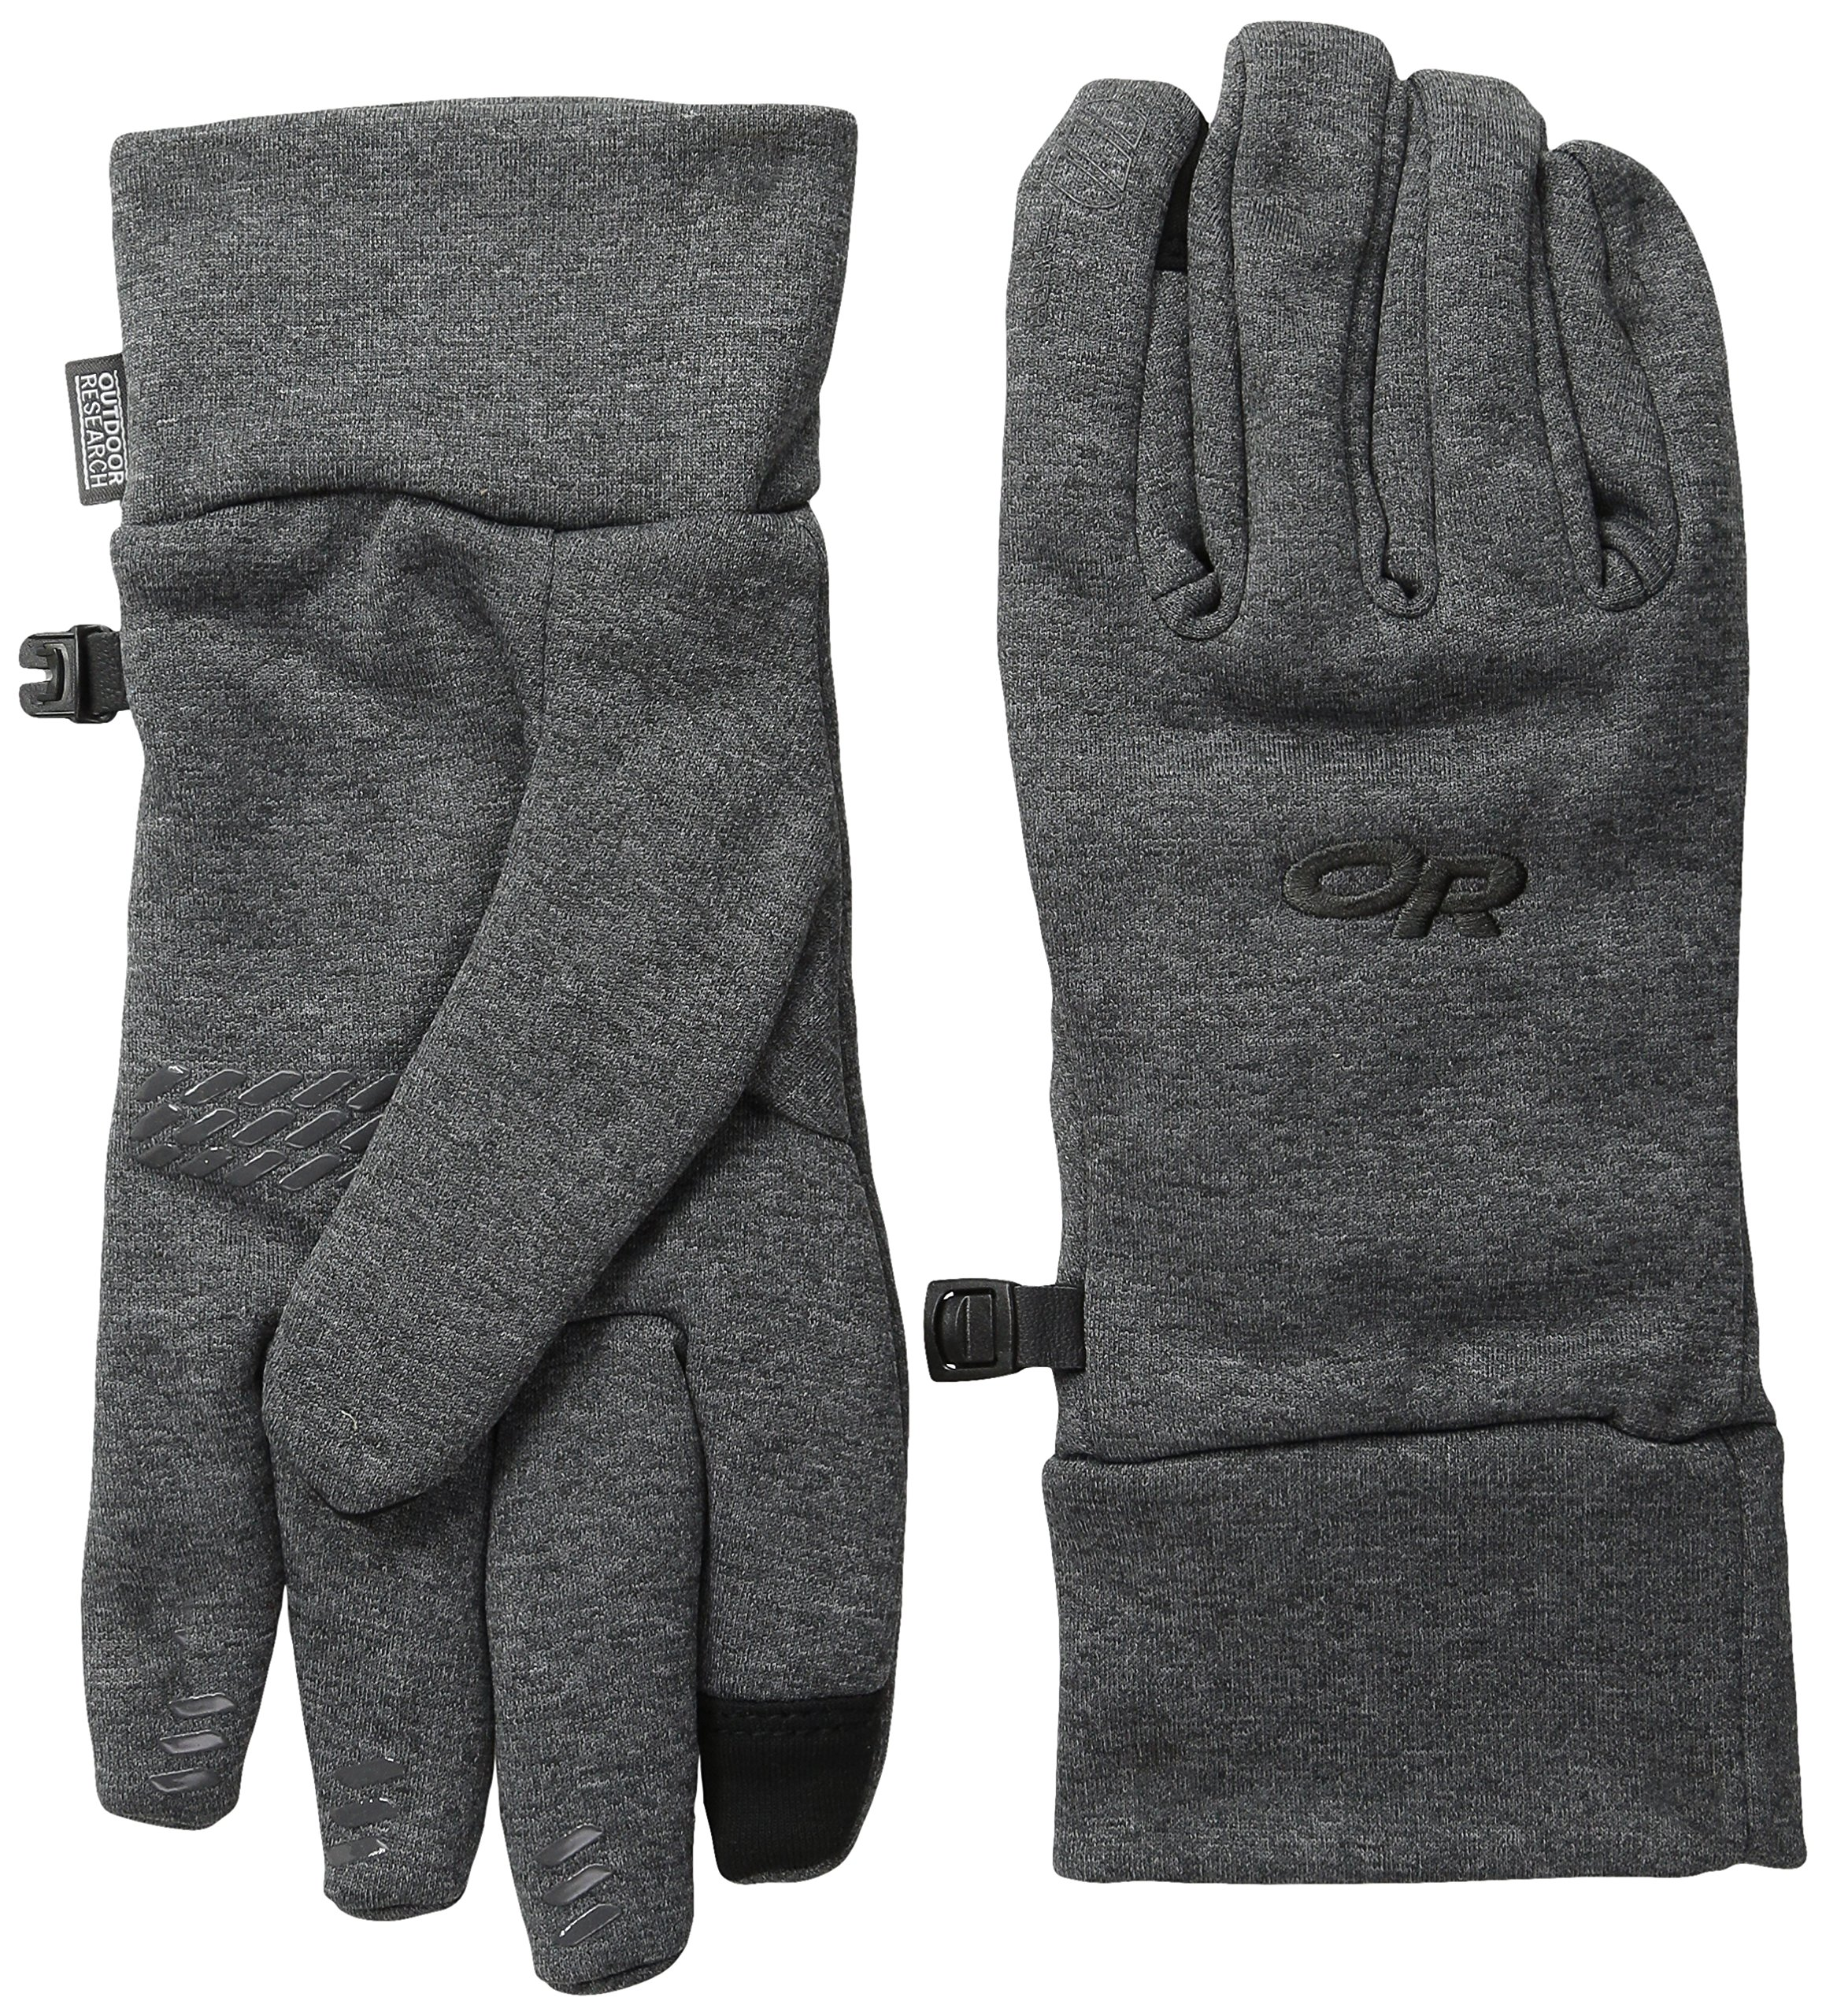 Outdoor Research Women's PL400 Sensor Gloves, Charcoal Heather, Medium